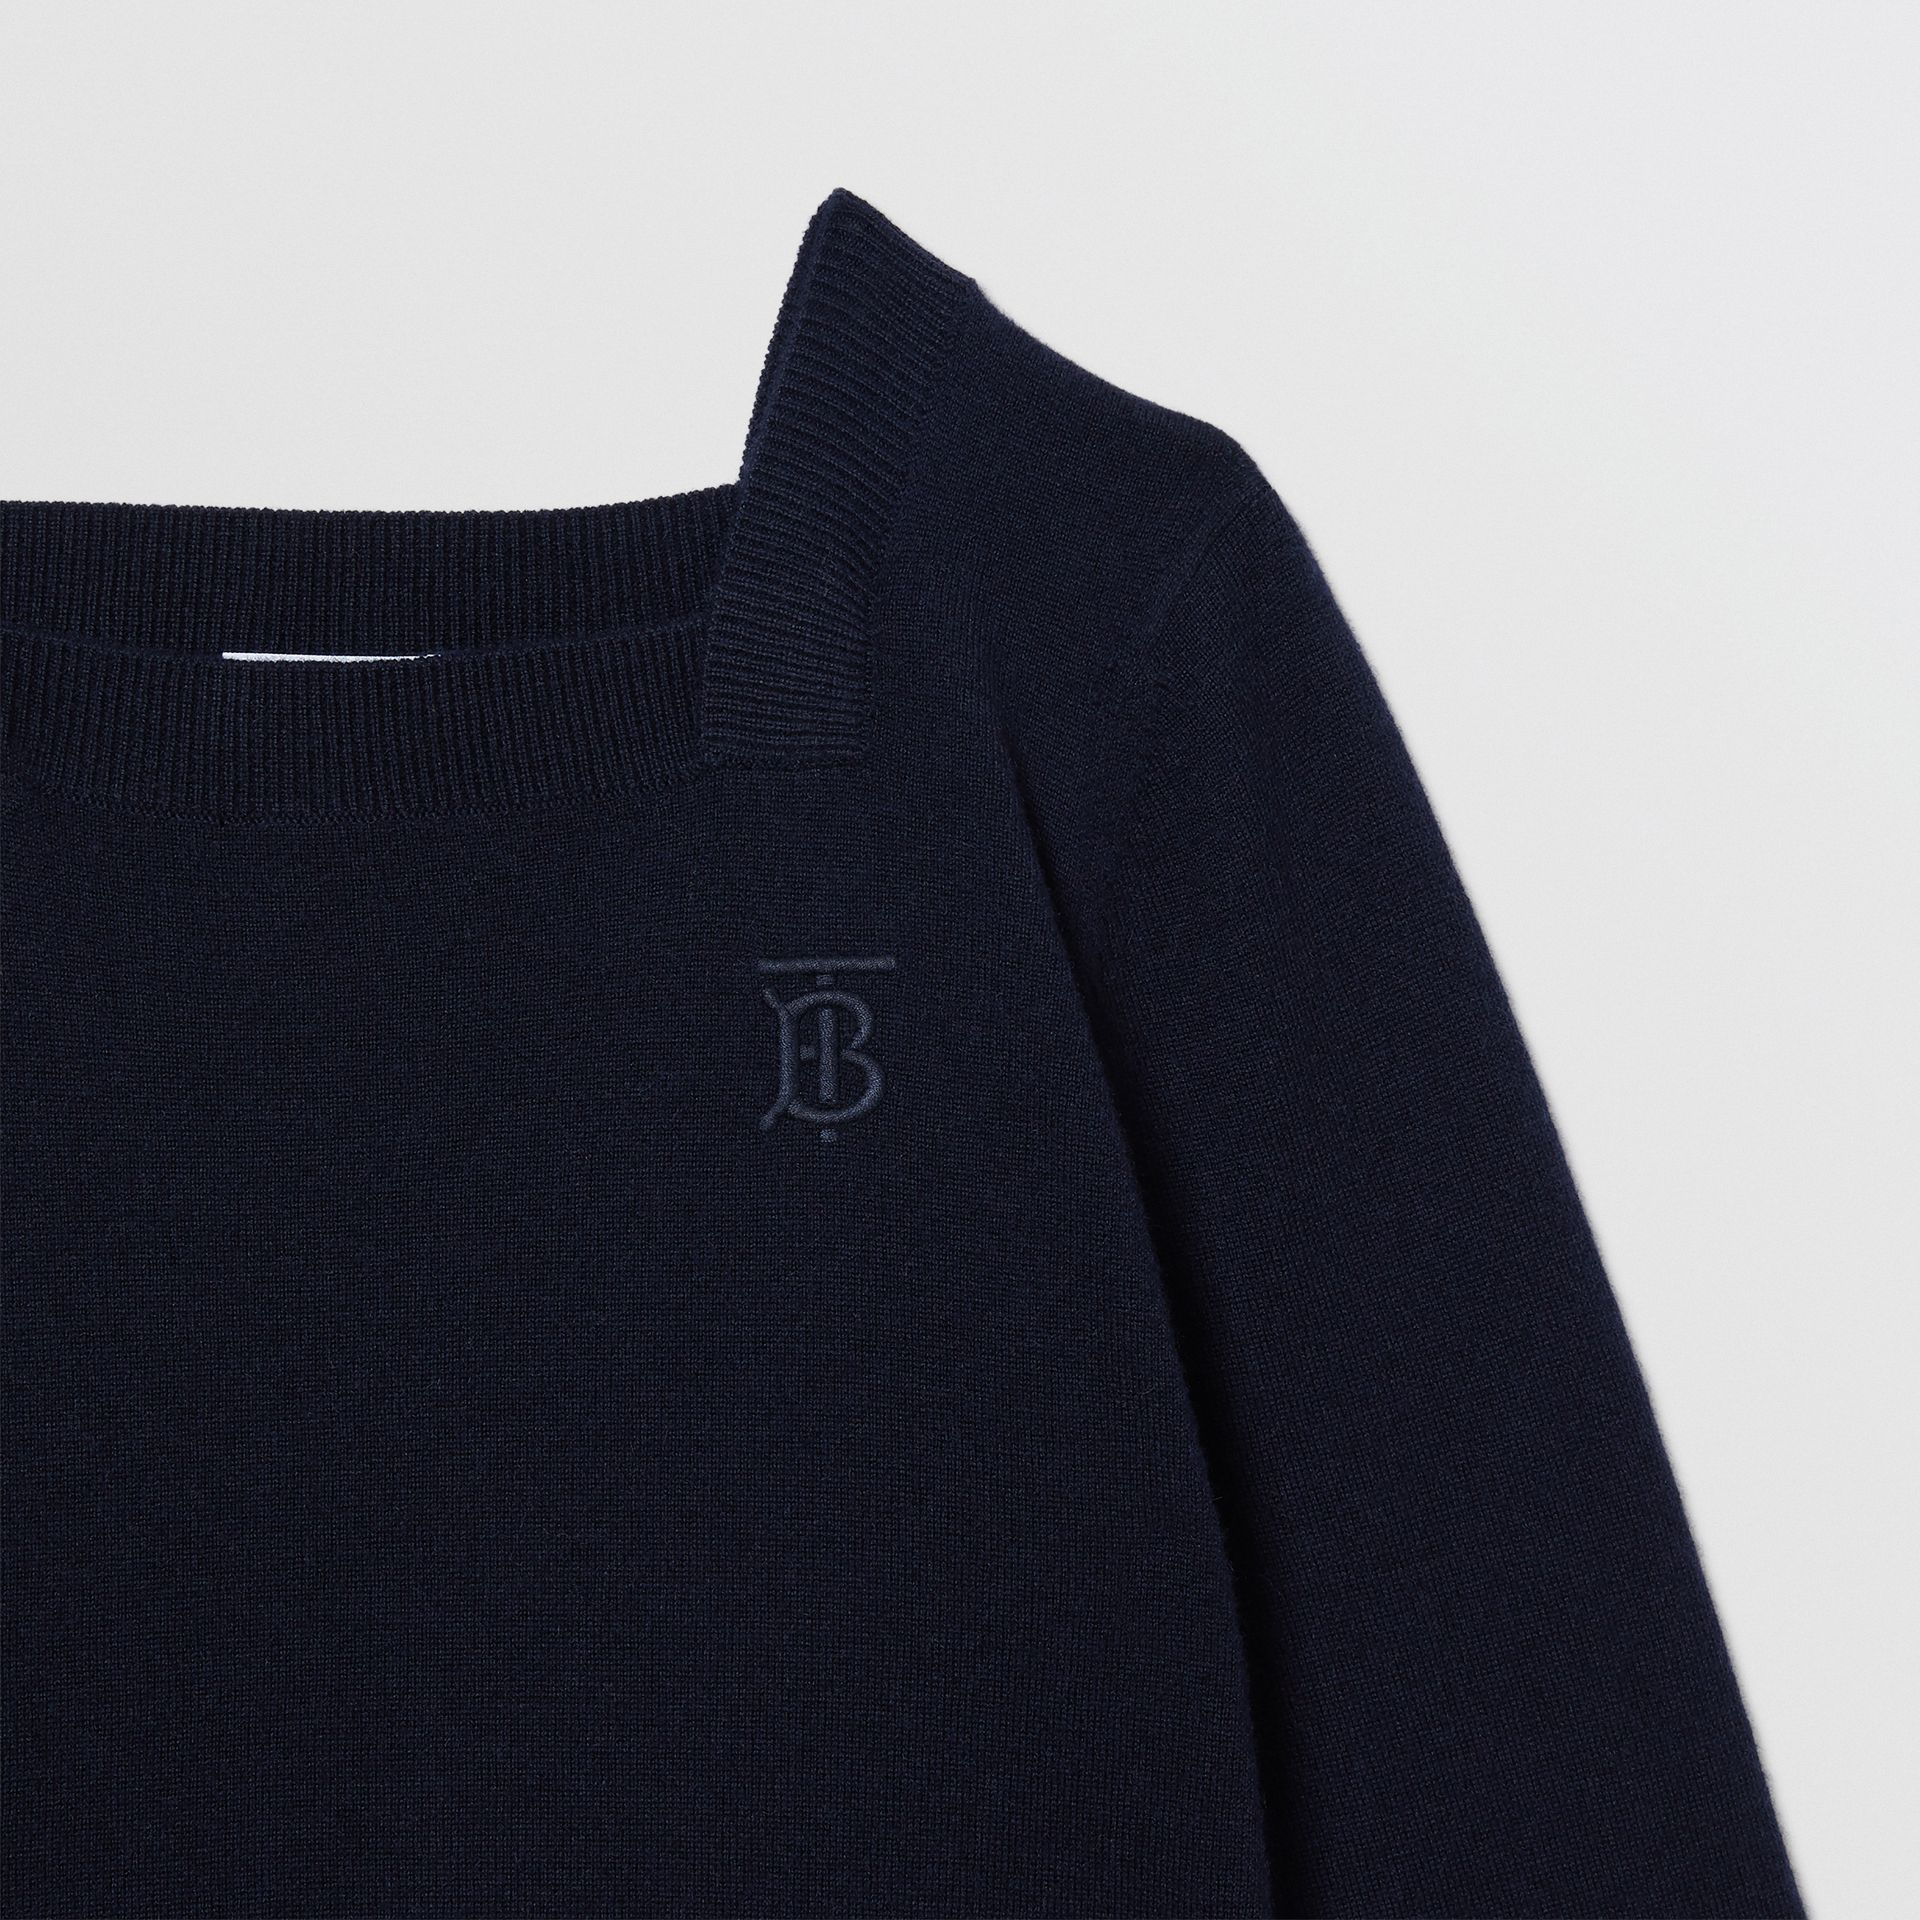 Monogram Motif Cashmere Sweater in Navy | Burberry - gallery image 5